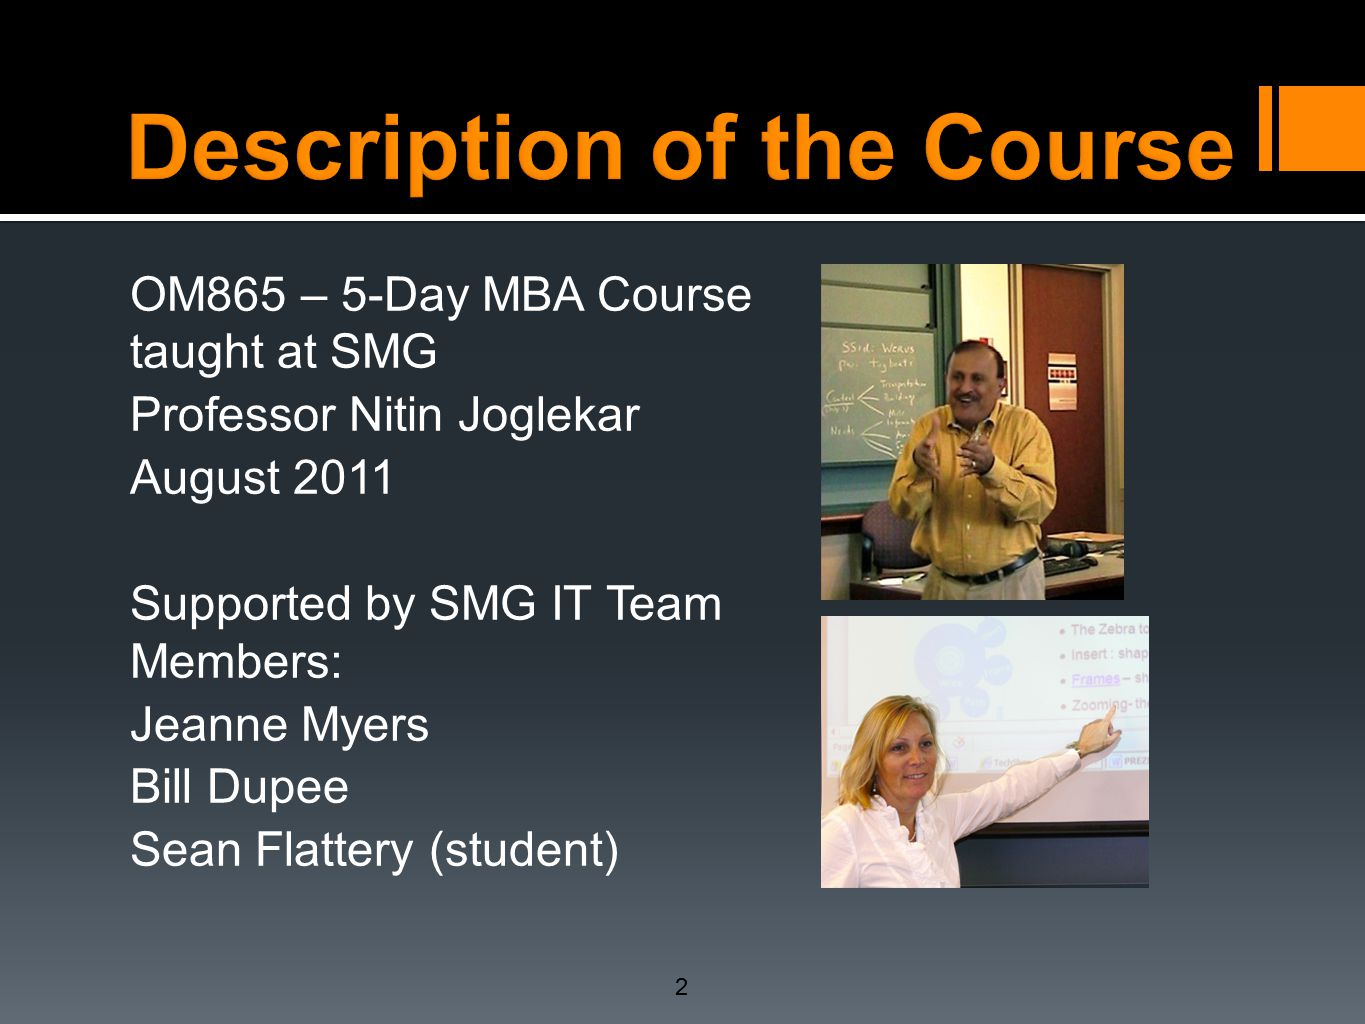 OM865 – 5-Day MBA Course taught at SMG Professor Nitin Joglekar August 2011 Supported by SMG IT Team Members: Jeanne Myers Bill Dupee Sean Flattery (s